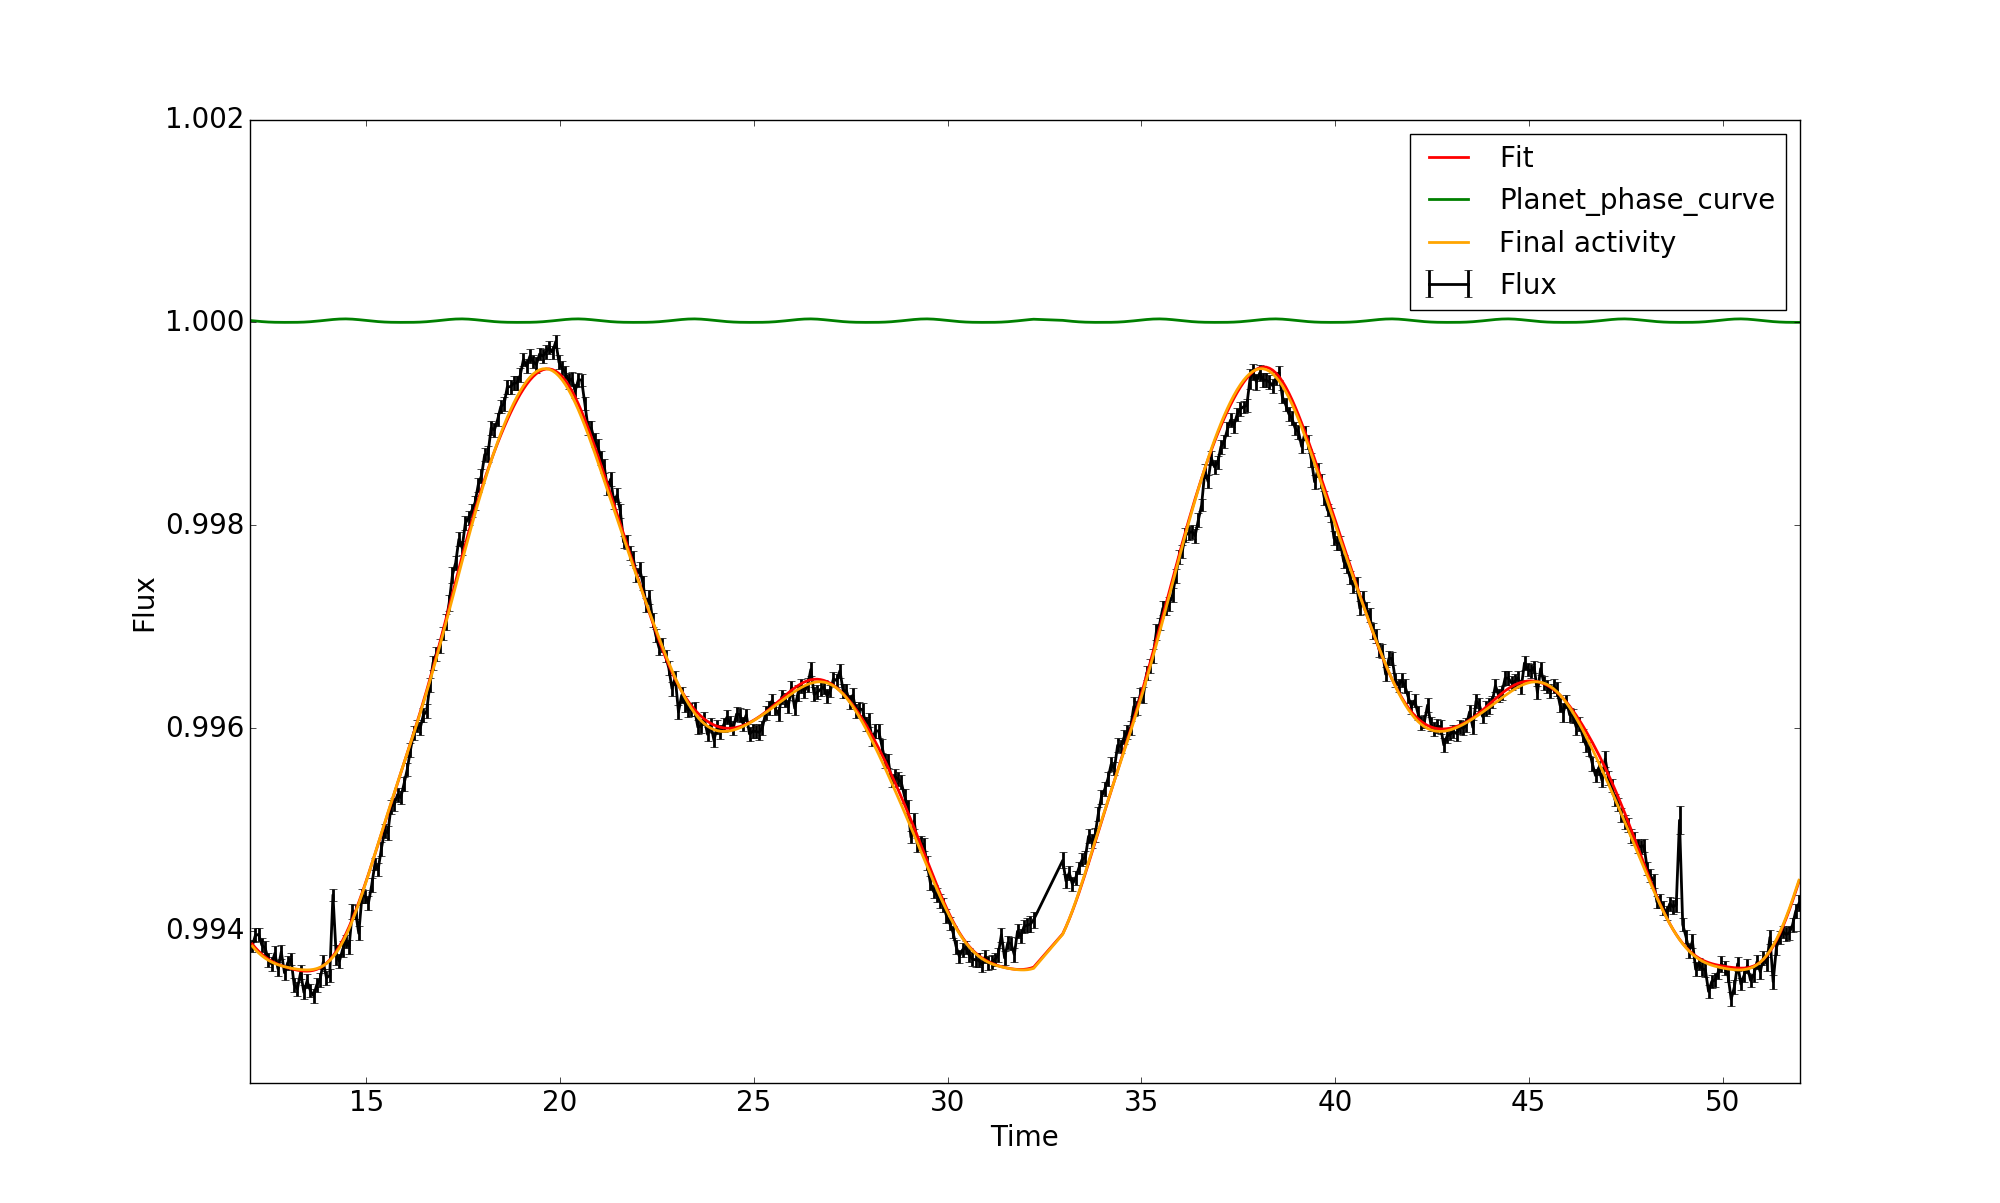 Extraction of the 12th quarter of Kepler observations for the star KIC 3643000 after adding a planet and a two-hour binning. The black error bars represent the data, the red line shows the fit, the orange line show the identified stellar activity, and the green line plots the planetary phase curve shifted by 1. The planet phase modulation is built with an albedo of